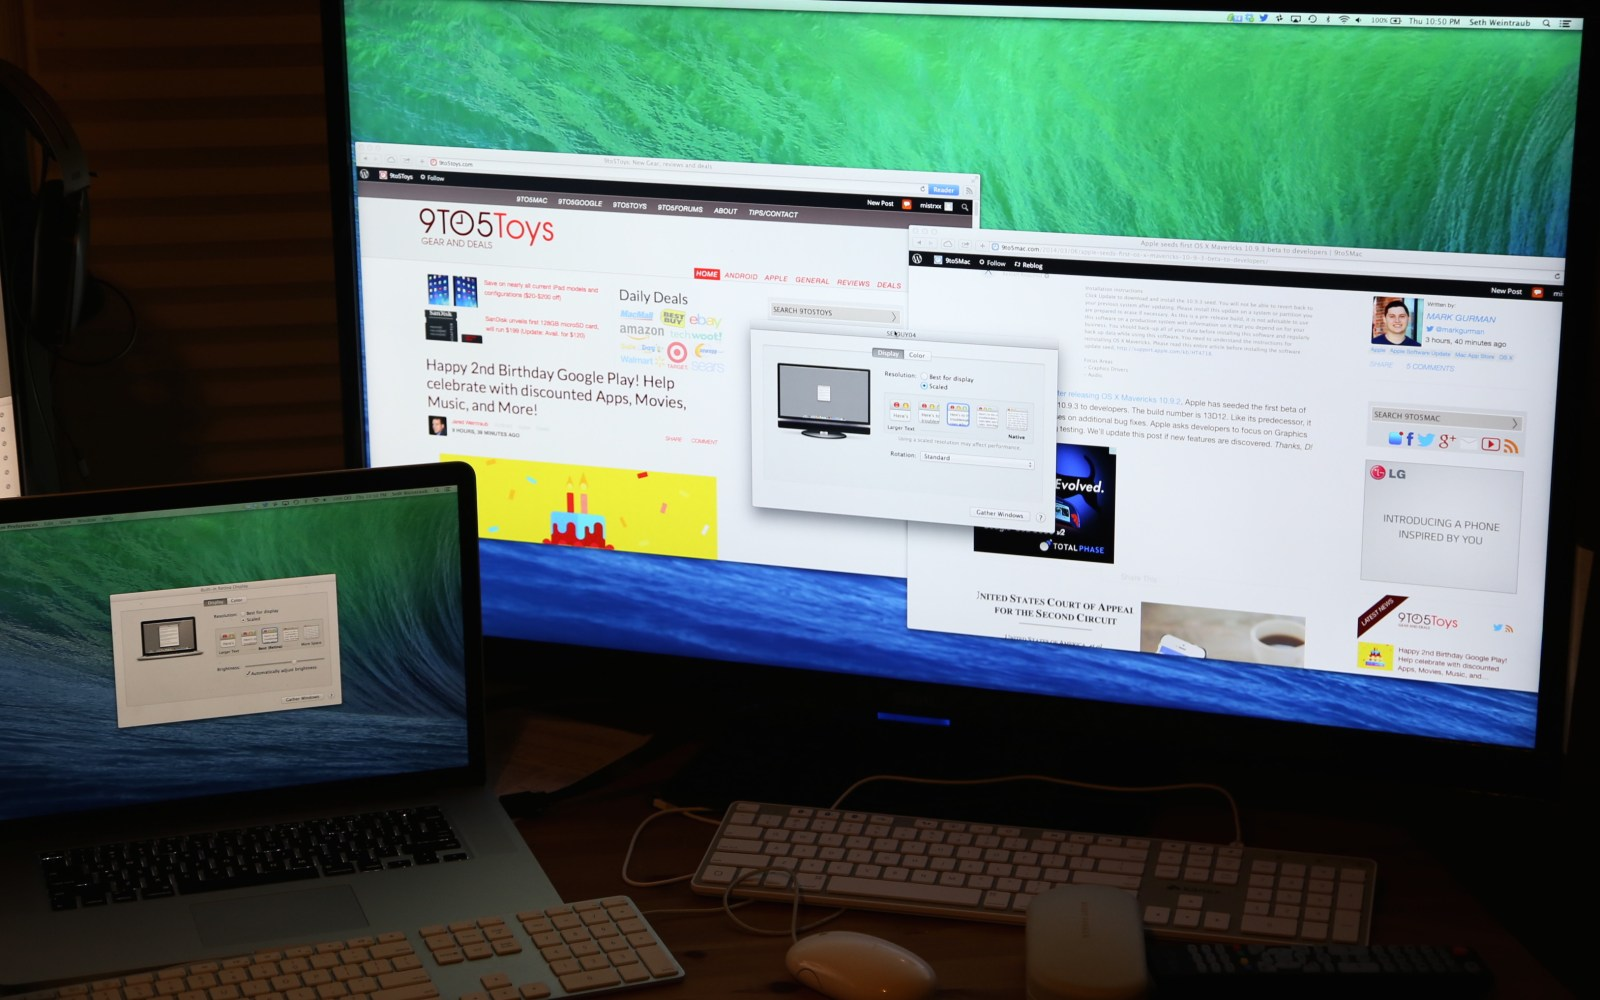 Apple details new 4K display support in OS X 10.9.3